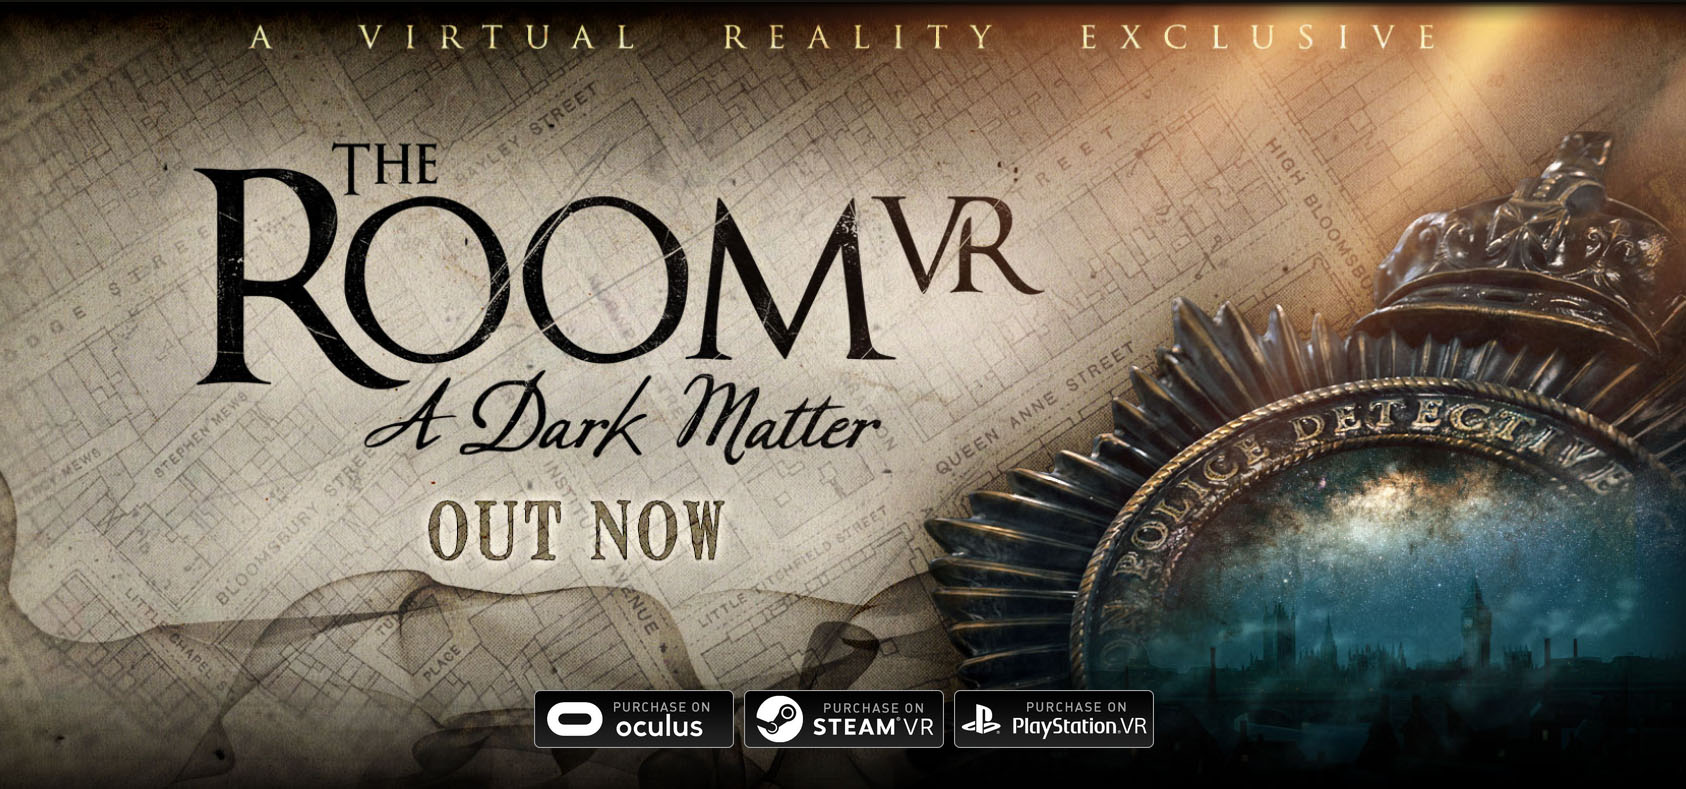 The room VR : A Dark Matter